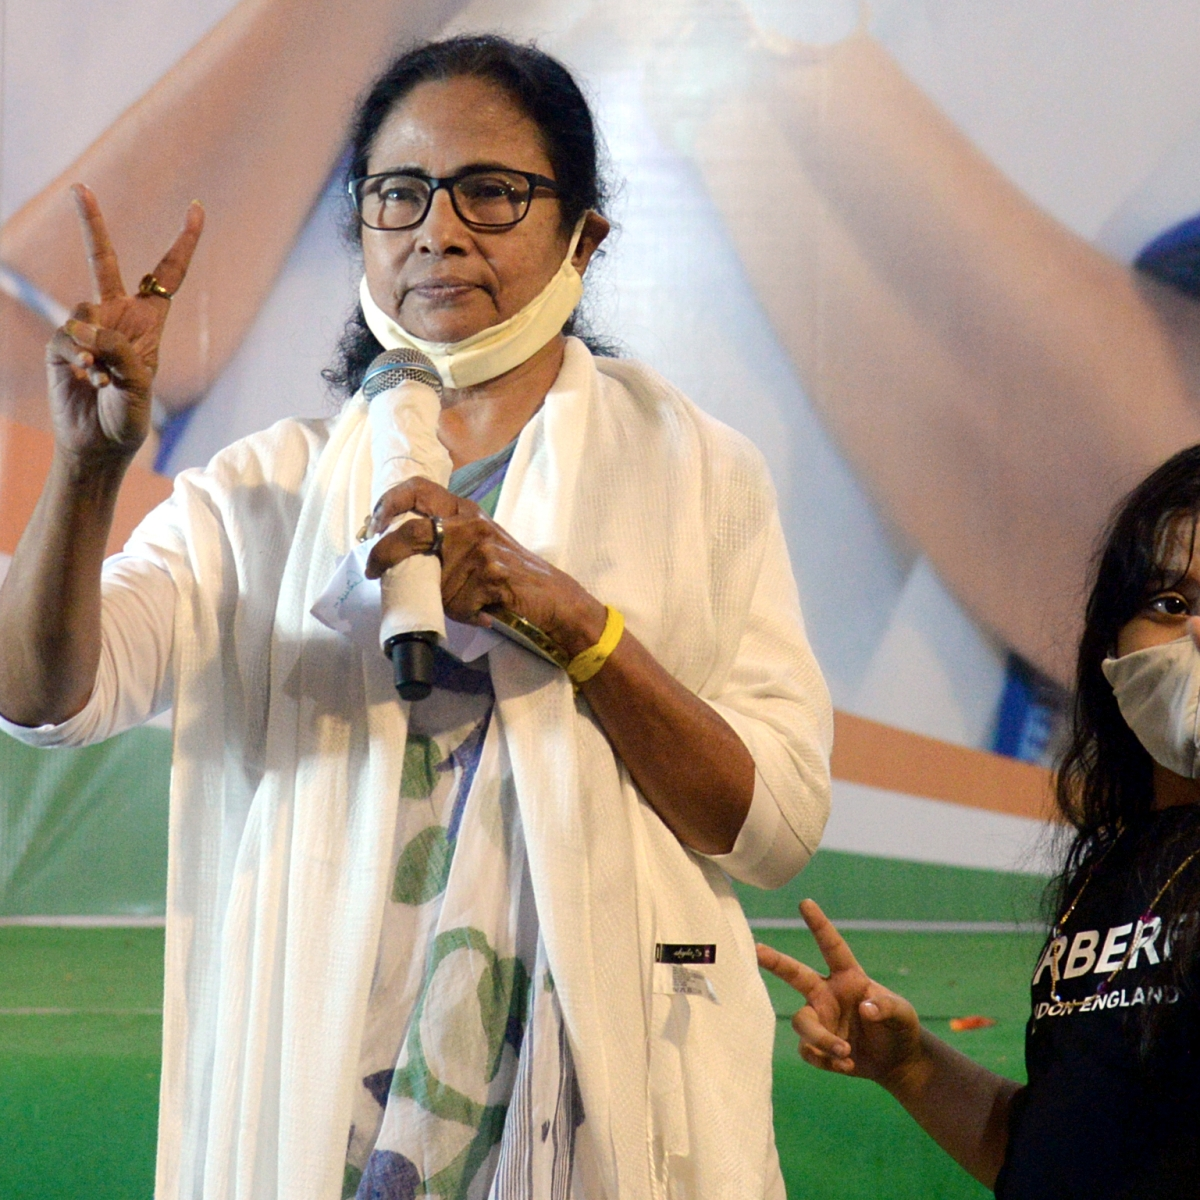 West Bengal Assembly poll results: Mamata Banerjee loses to Suvendu Adhikari by 1,736 votes in Nandigram; likely to move court